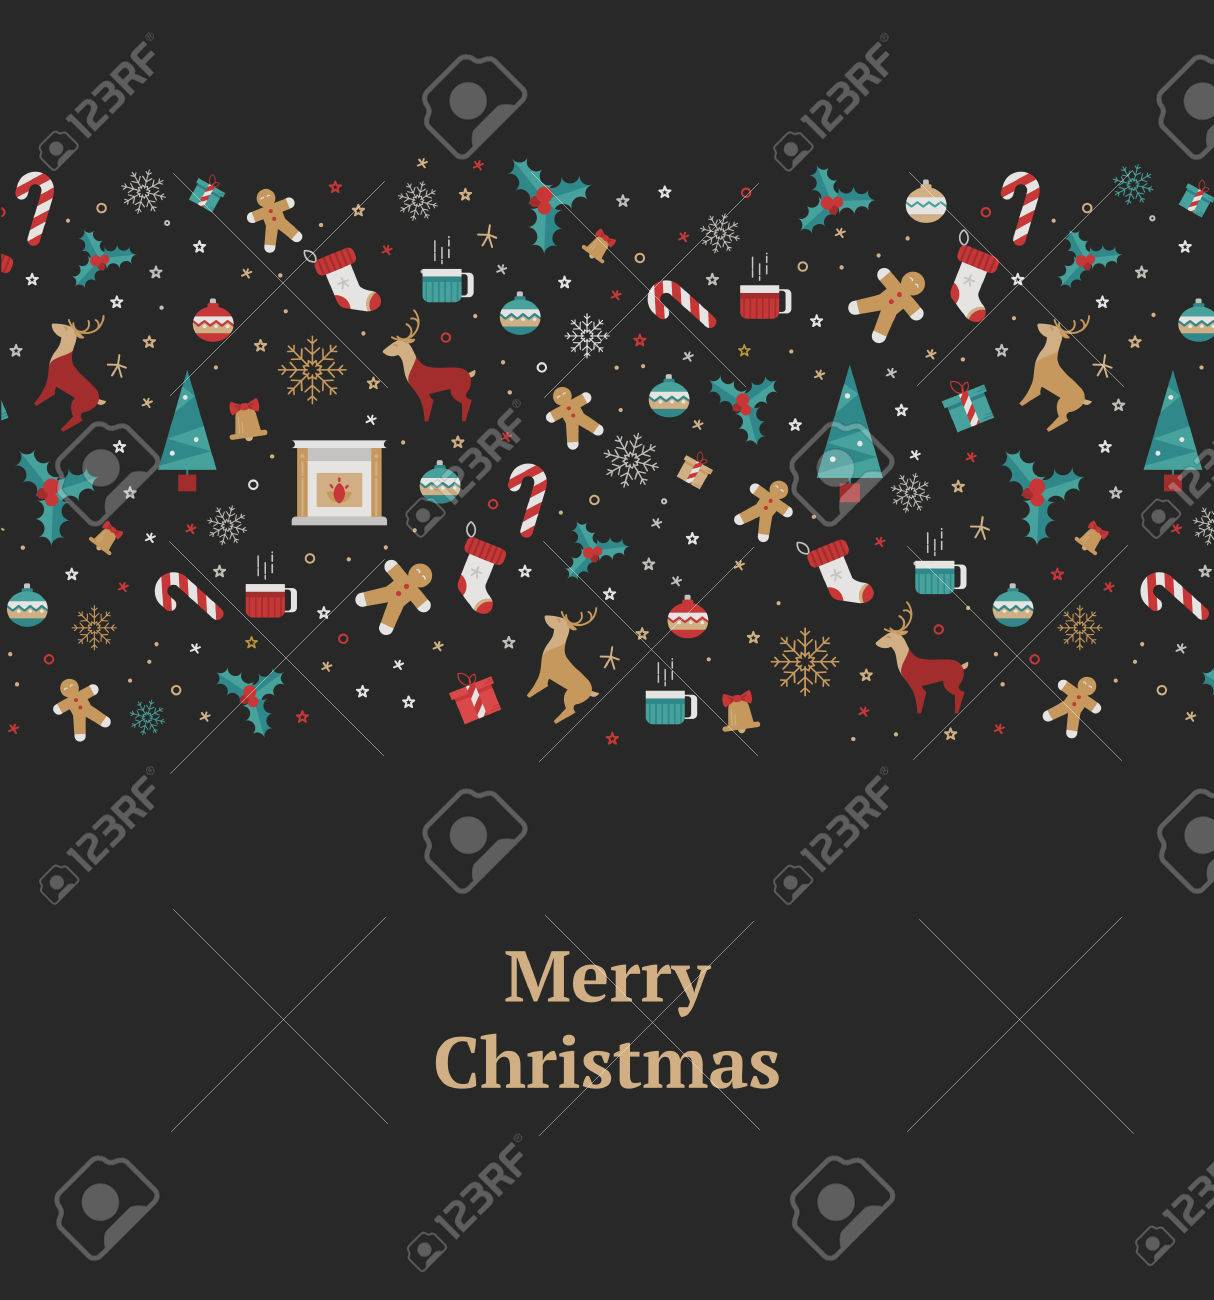 merry christmas decorations elements seamless pattern border illustration for new year 2106 with a reindeer